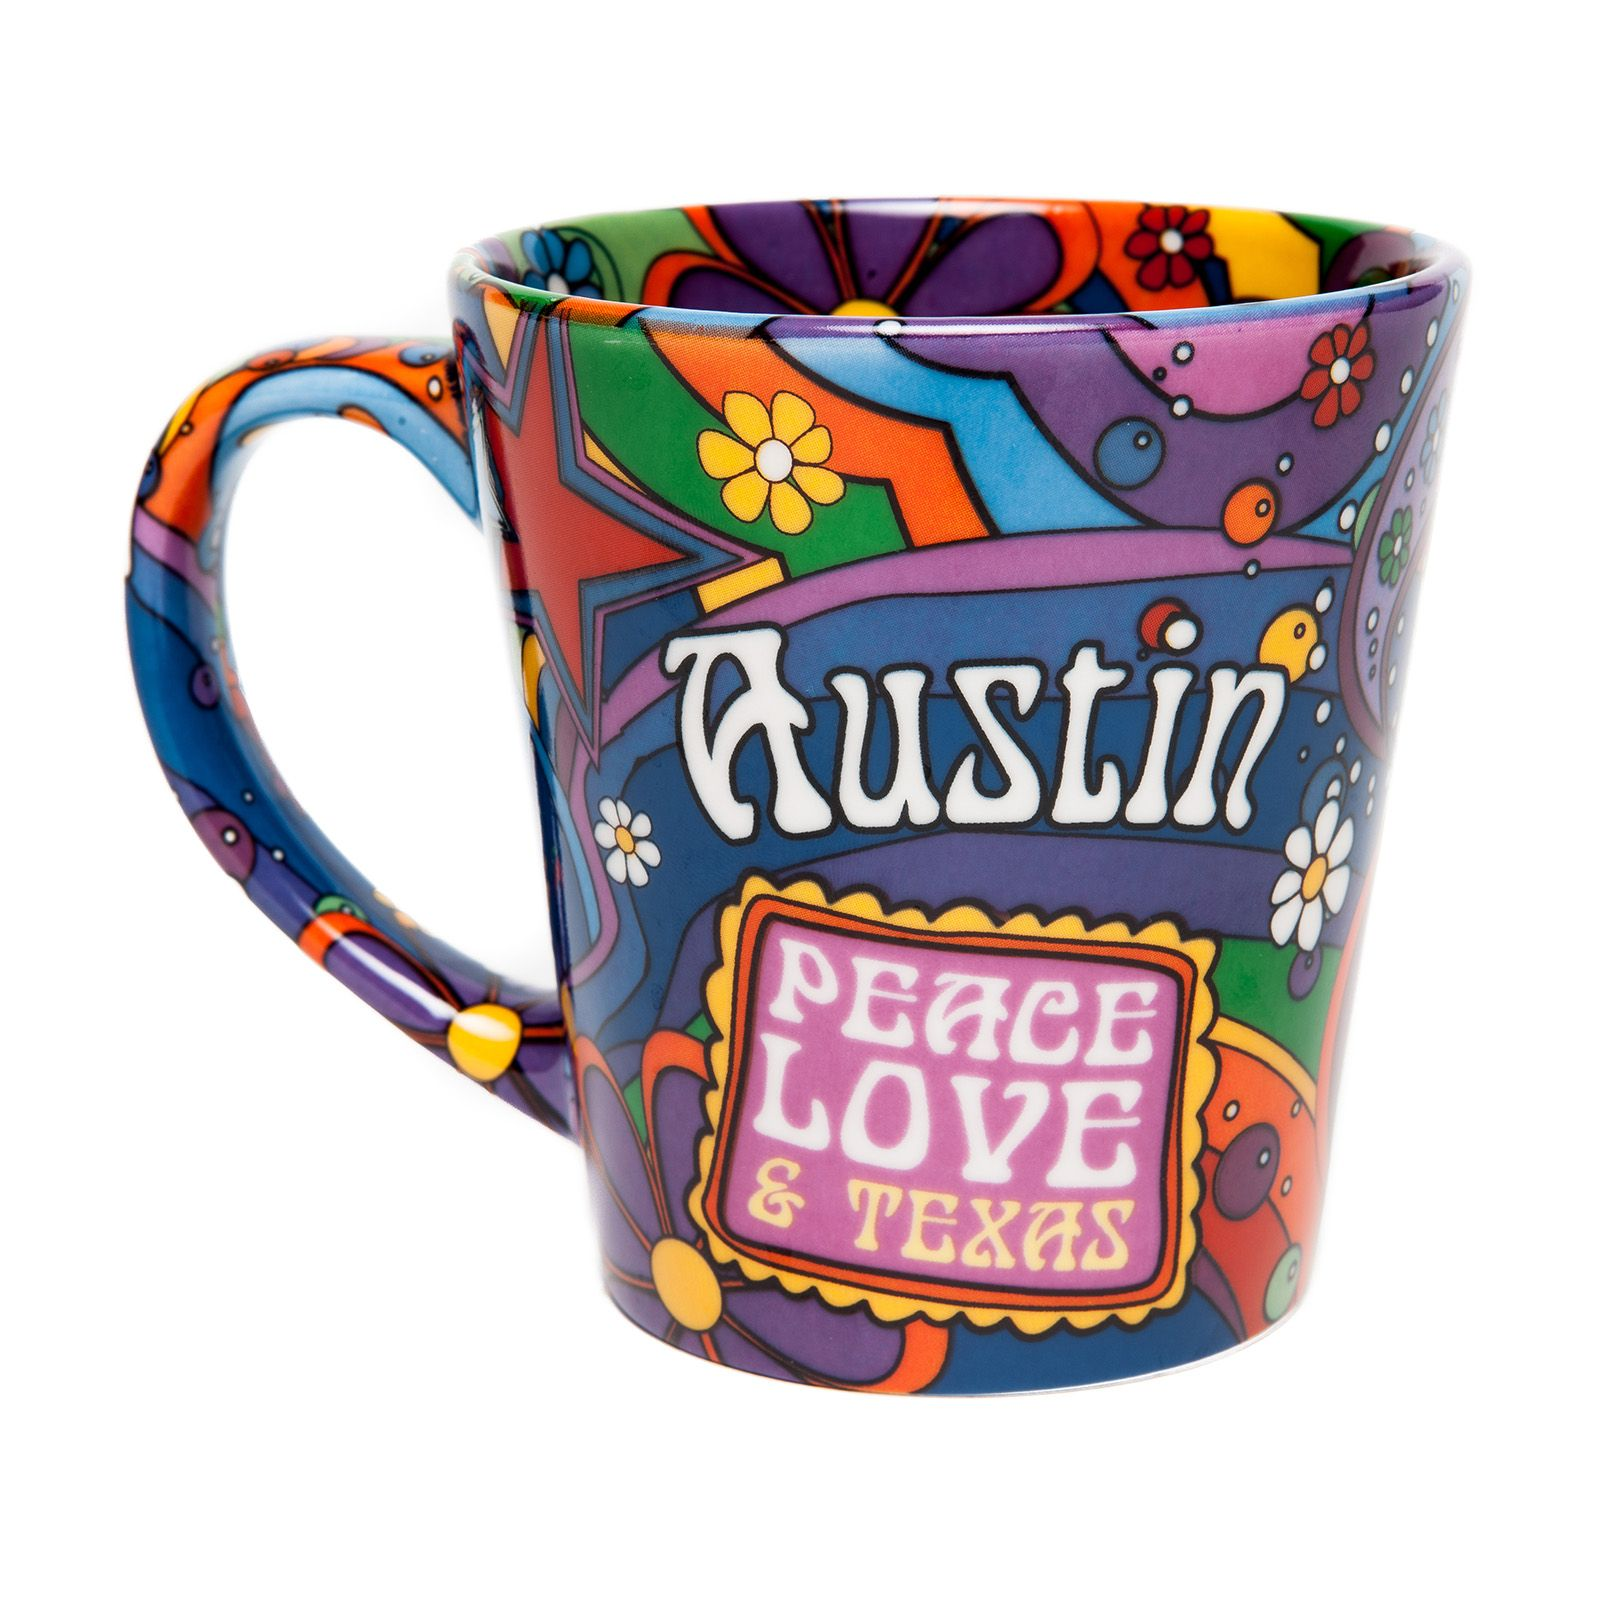 Austin: Peace, Love, and Texas Ceramic Mug